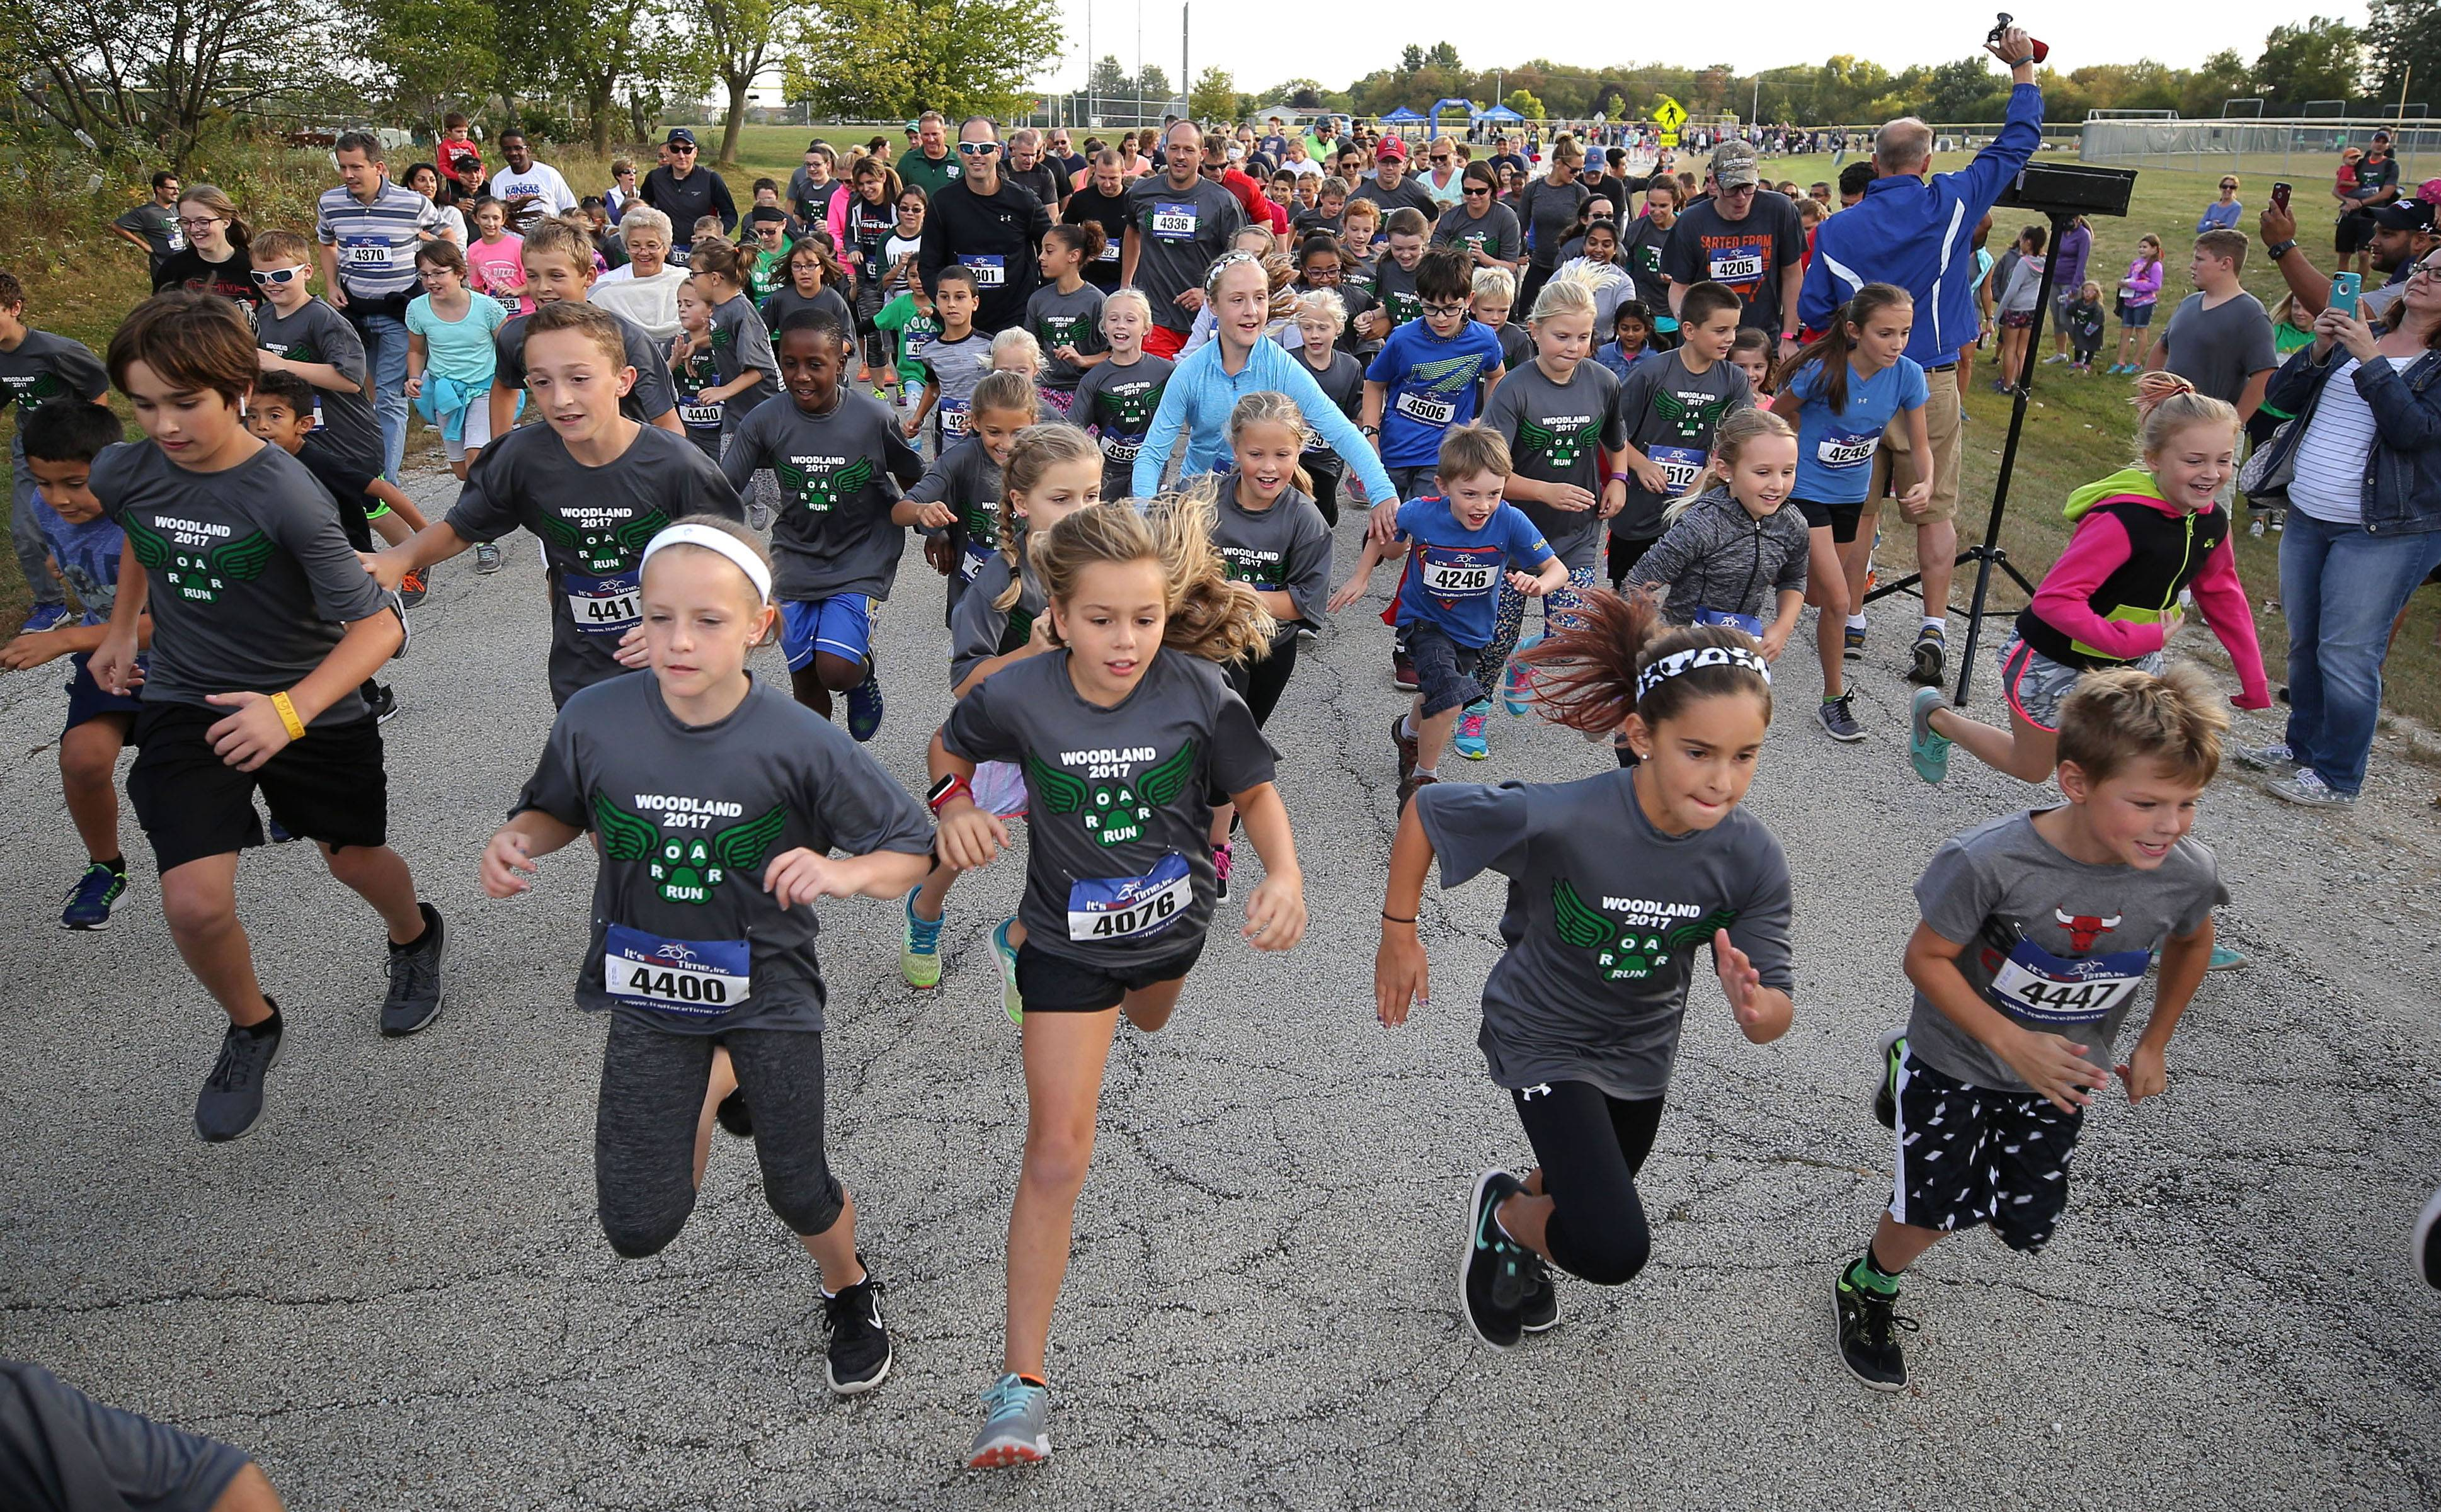 Kids dart off the starting line in a one-mile race Friday during the ROAR Run sponsored by the Woodland PTA at Woodland Middle School in Gurnee.